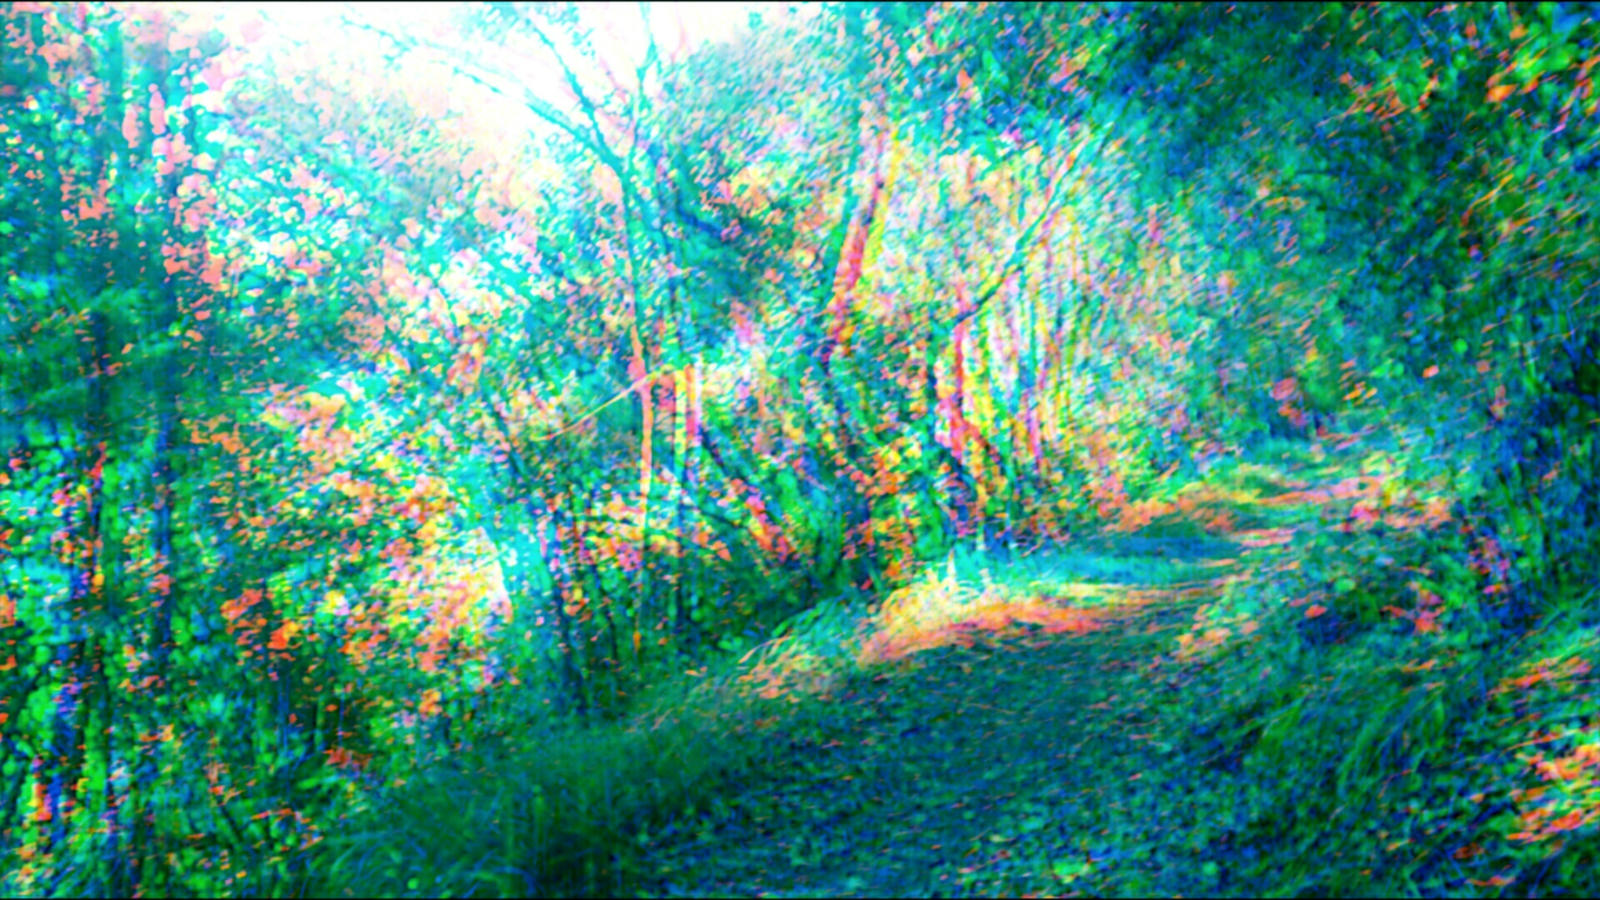 trippy forest 3 by aniabuckle on deviantart